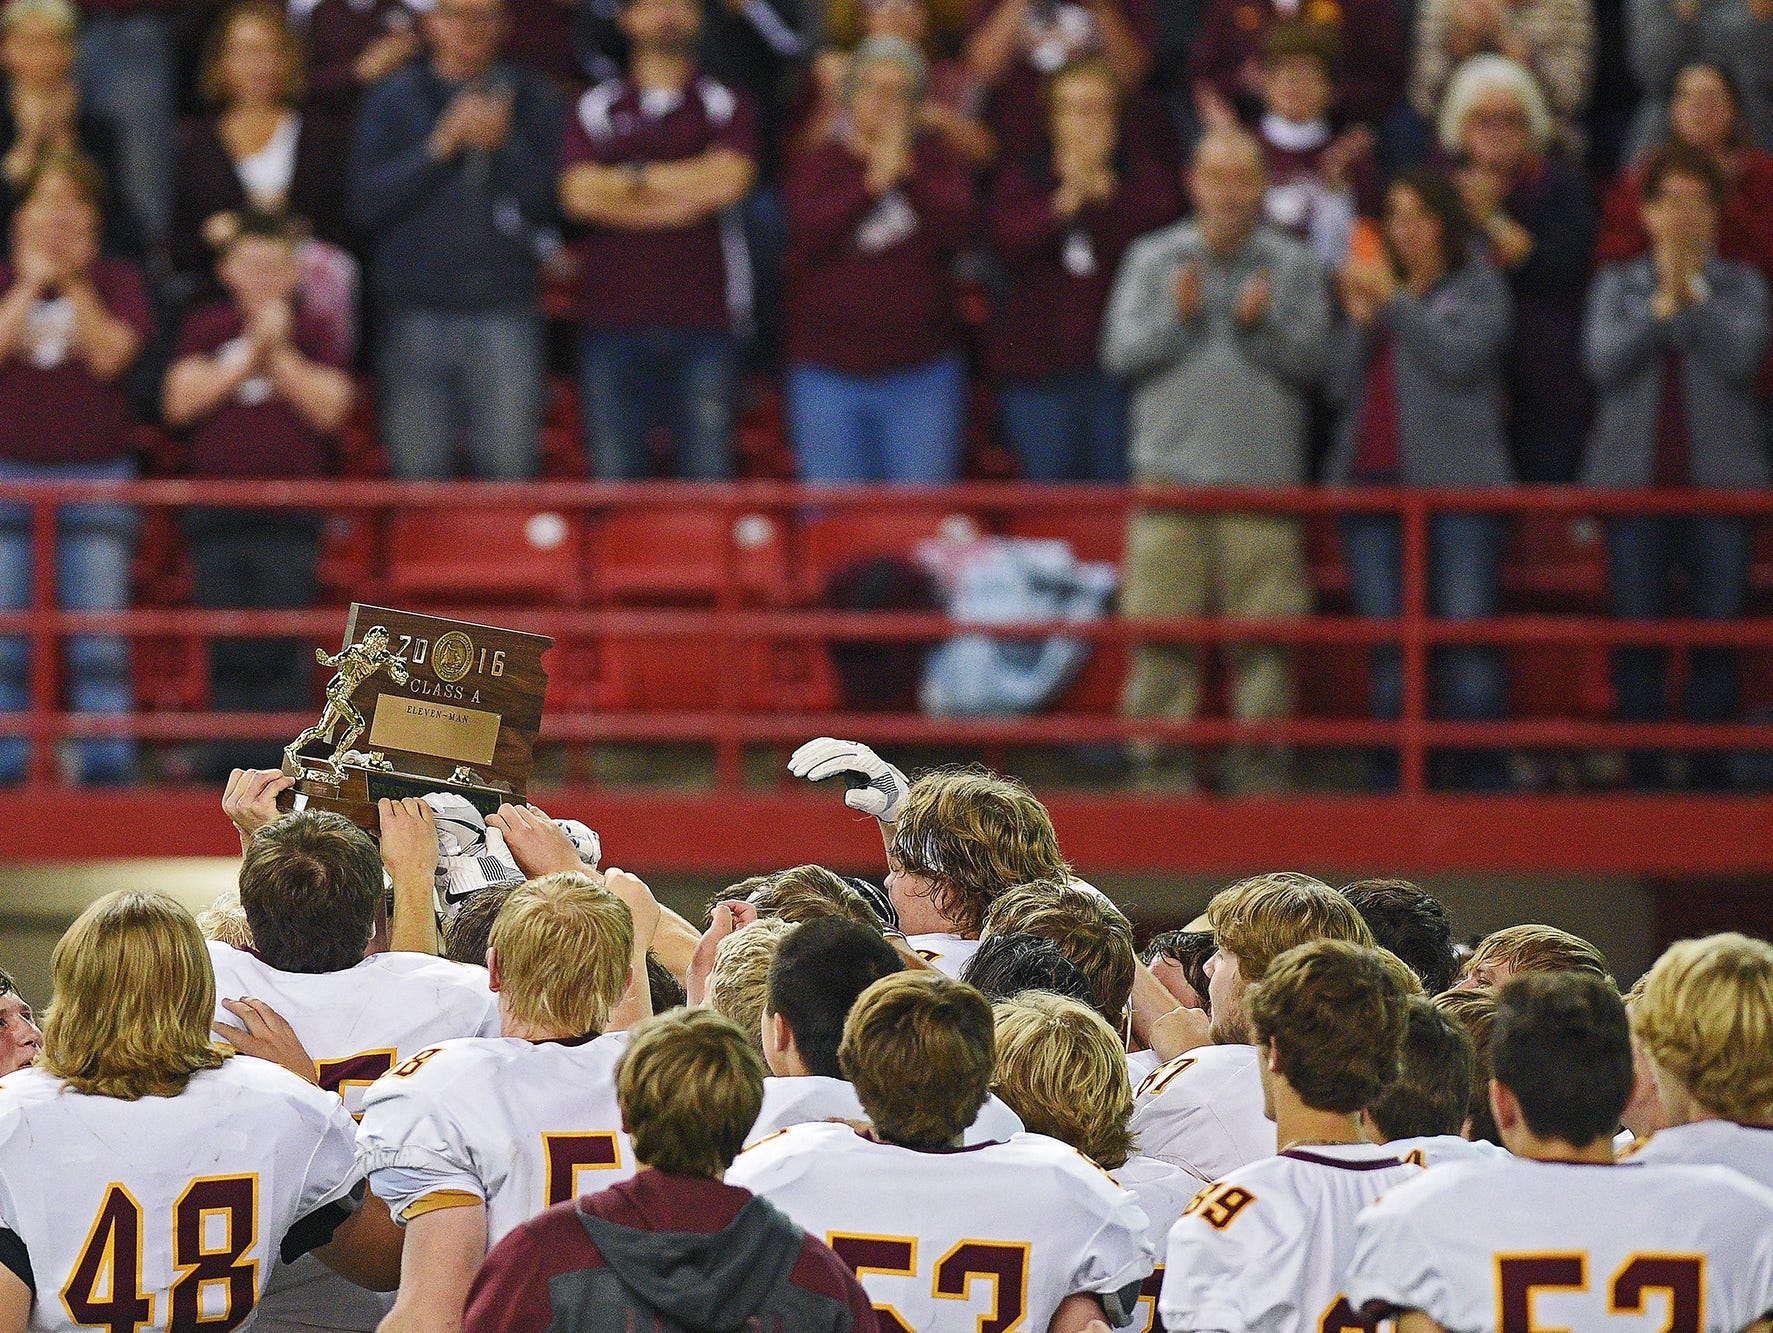 Madison players celebrate their 39-0 win over Tea Area in the 2016 South Dakota State Class 11A Football Championship game Saturday, Nov. 12, 2016, at the DakotaDome on the University of South Dakota campus in Vermillion, S.D.